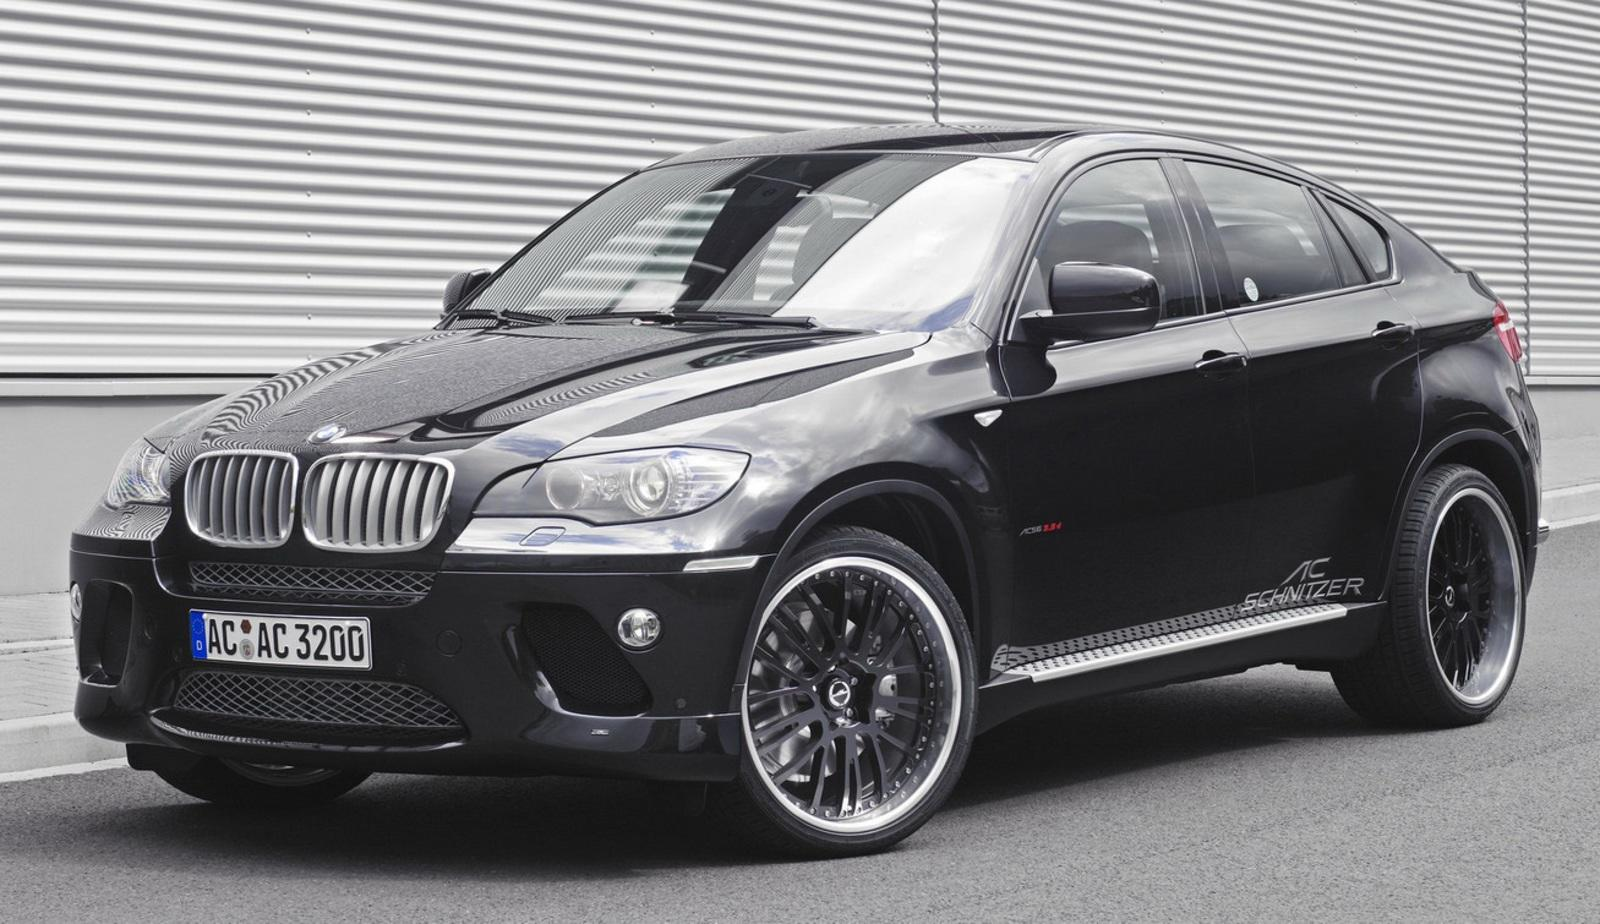 Audi Car Mats >> 2008 BMW X6 By AC Schnitzer Review - Top Speed